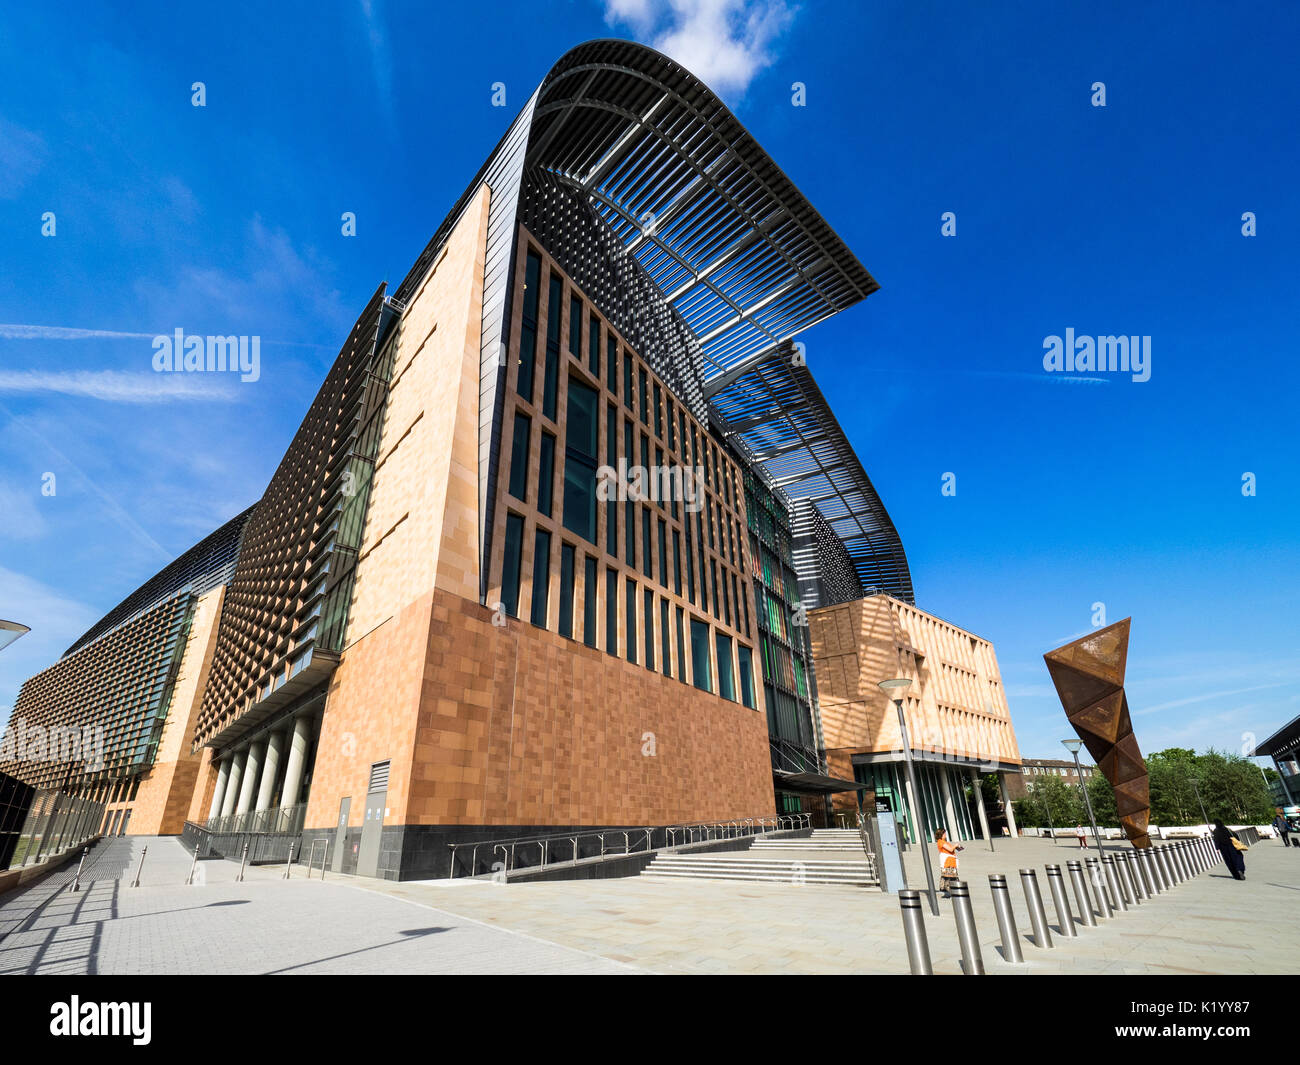 Francis Crick Institute London  - a new biomedical research institute opened in August 2016 - Stock Image